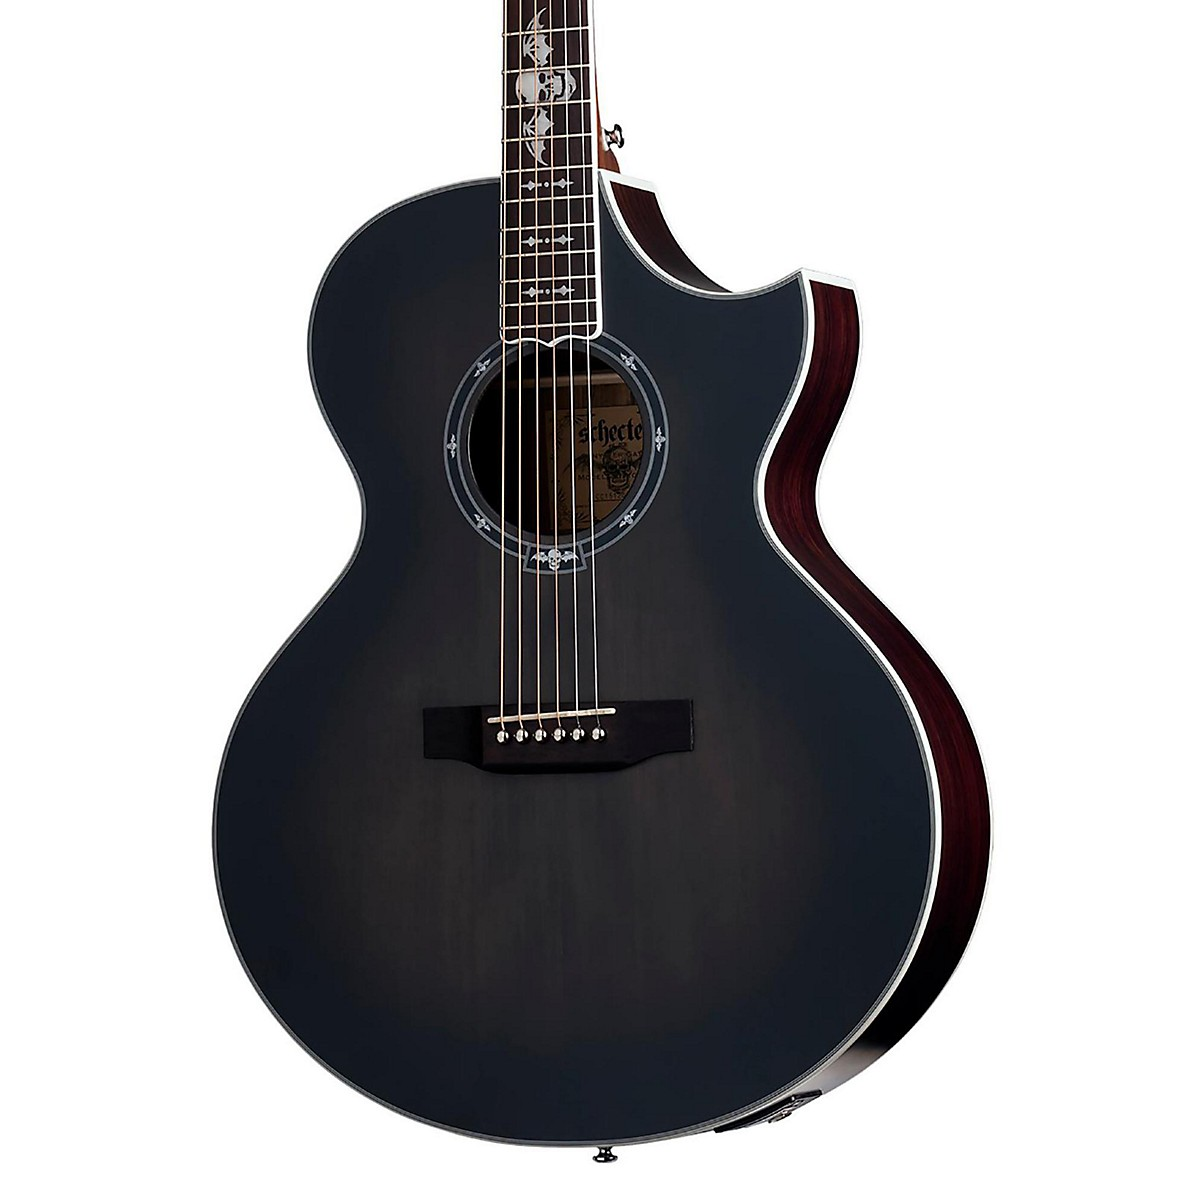 Schecter Guitar Research Synyster Gates 3701 Acoustic-Electric Guitar